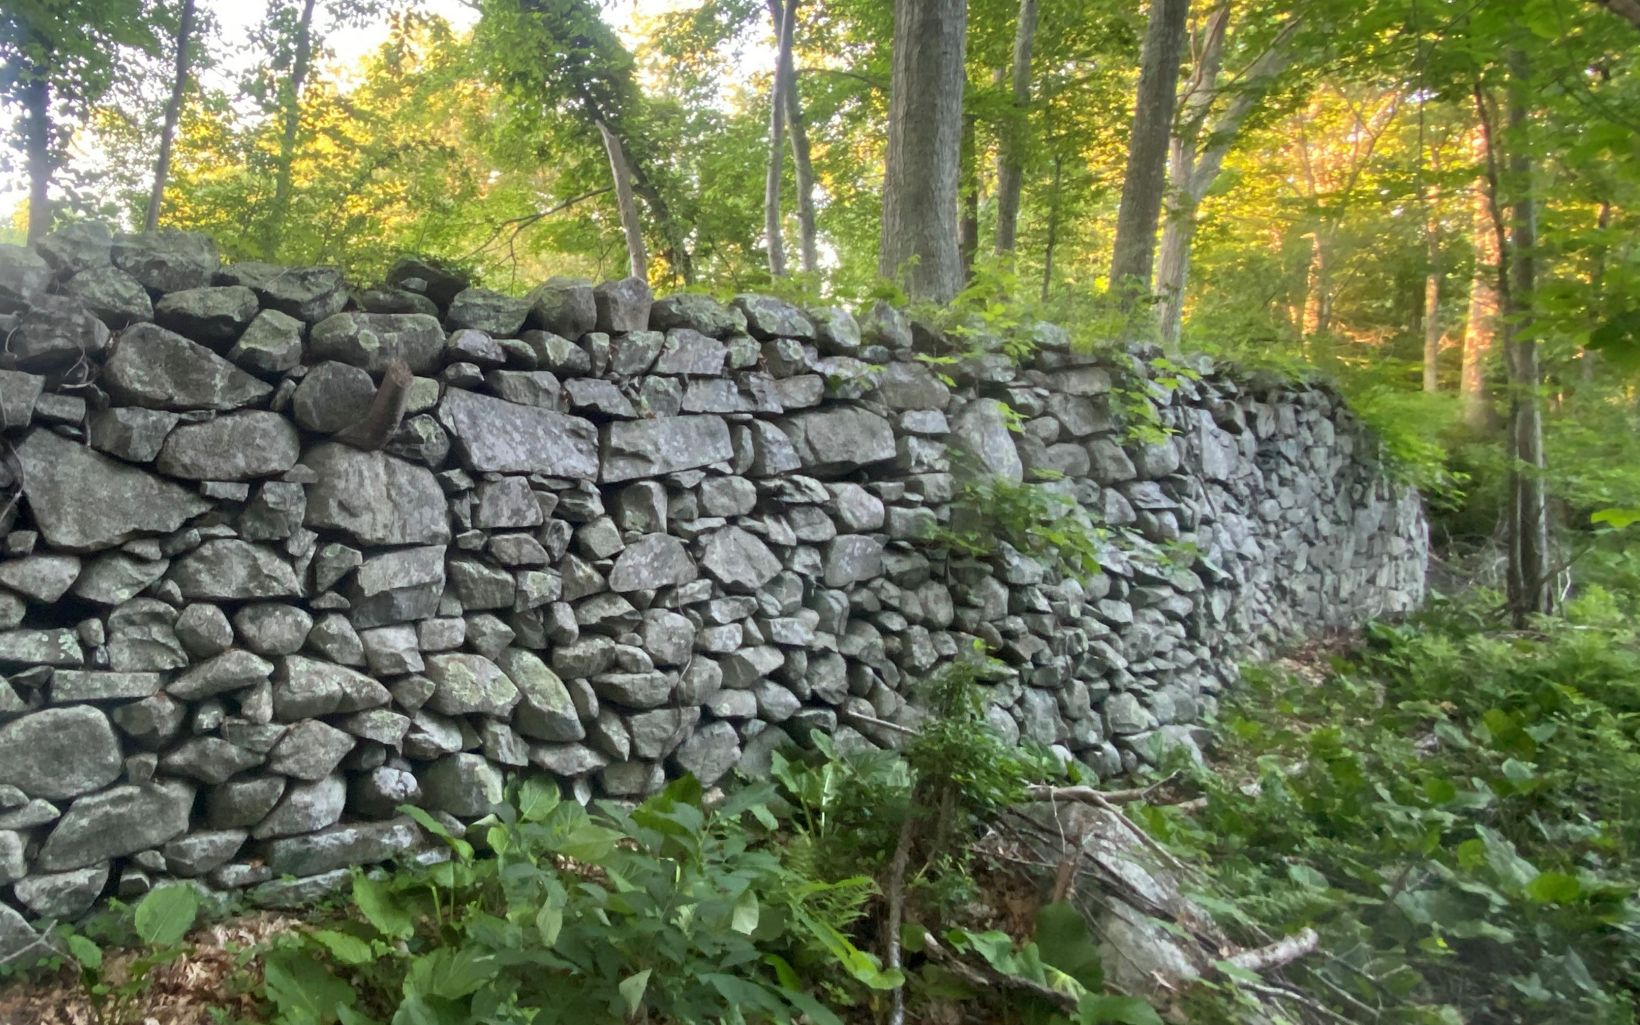 An 8-foot-tall historic dam made of field stones, surrounded by young forest.